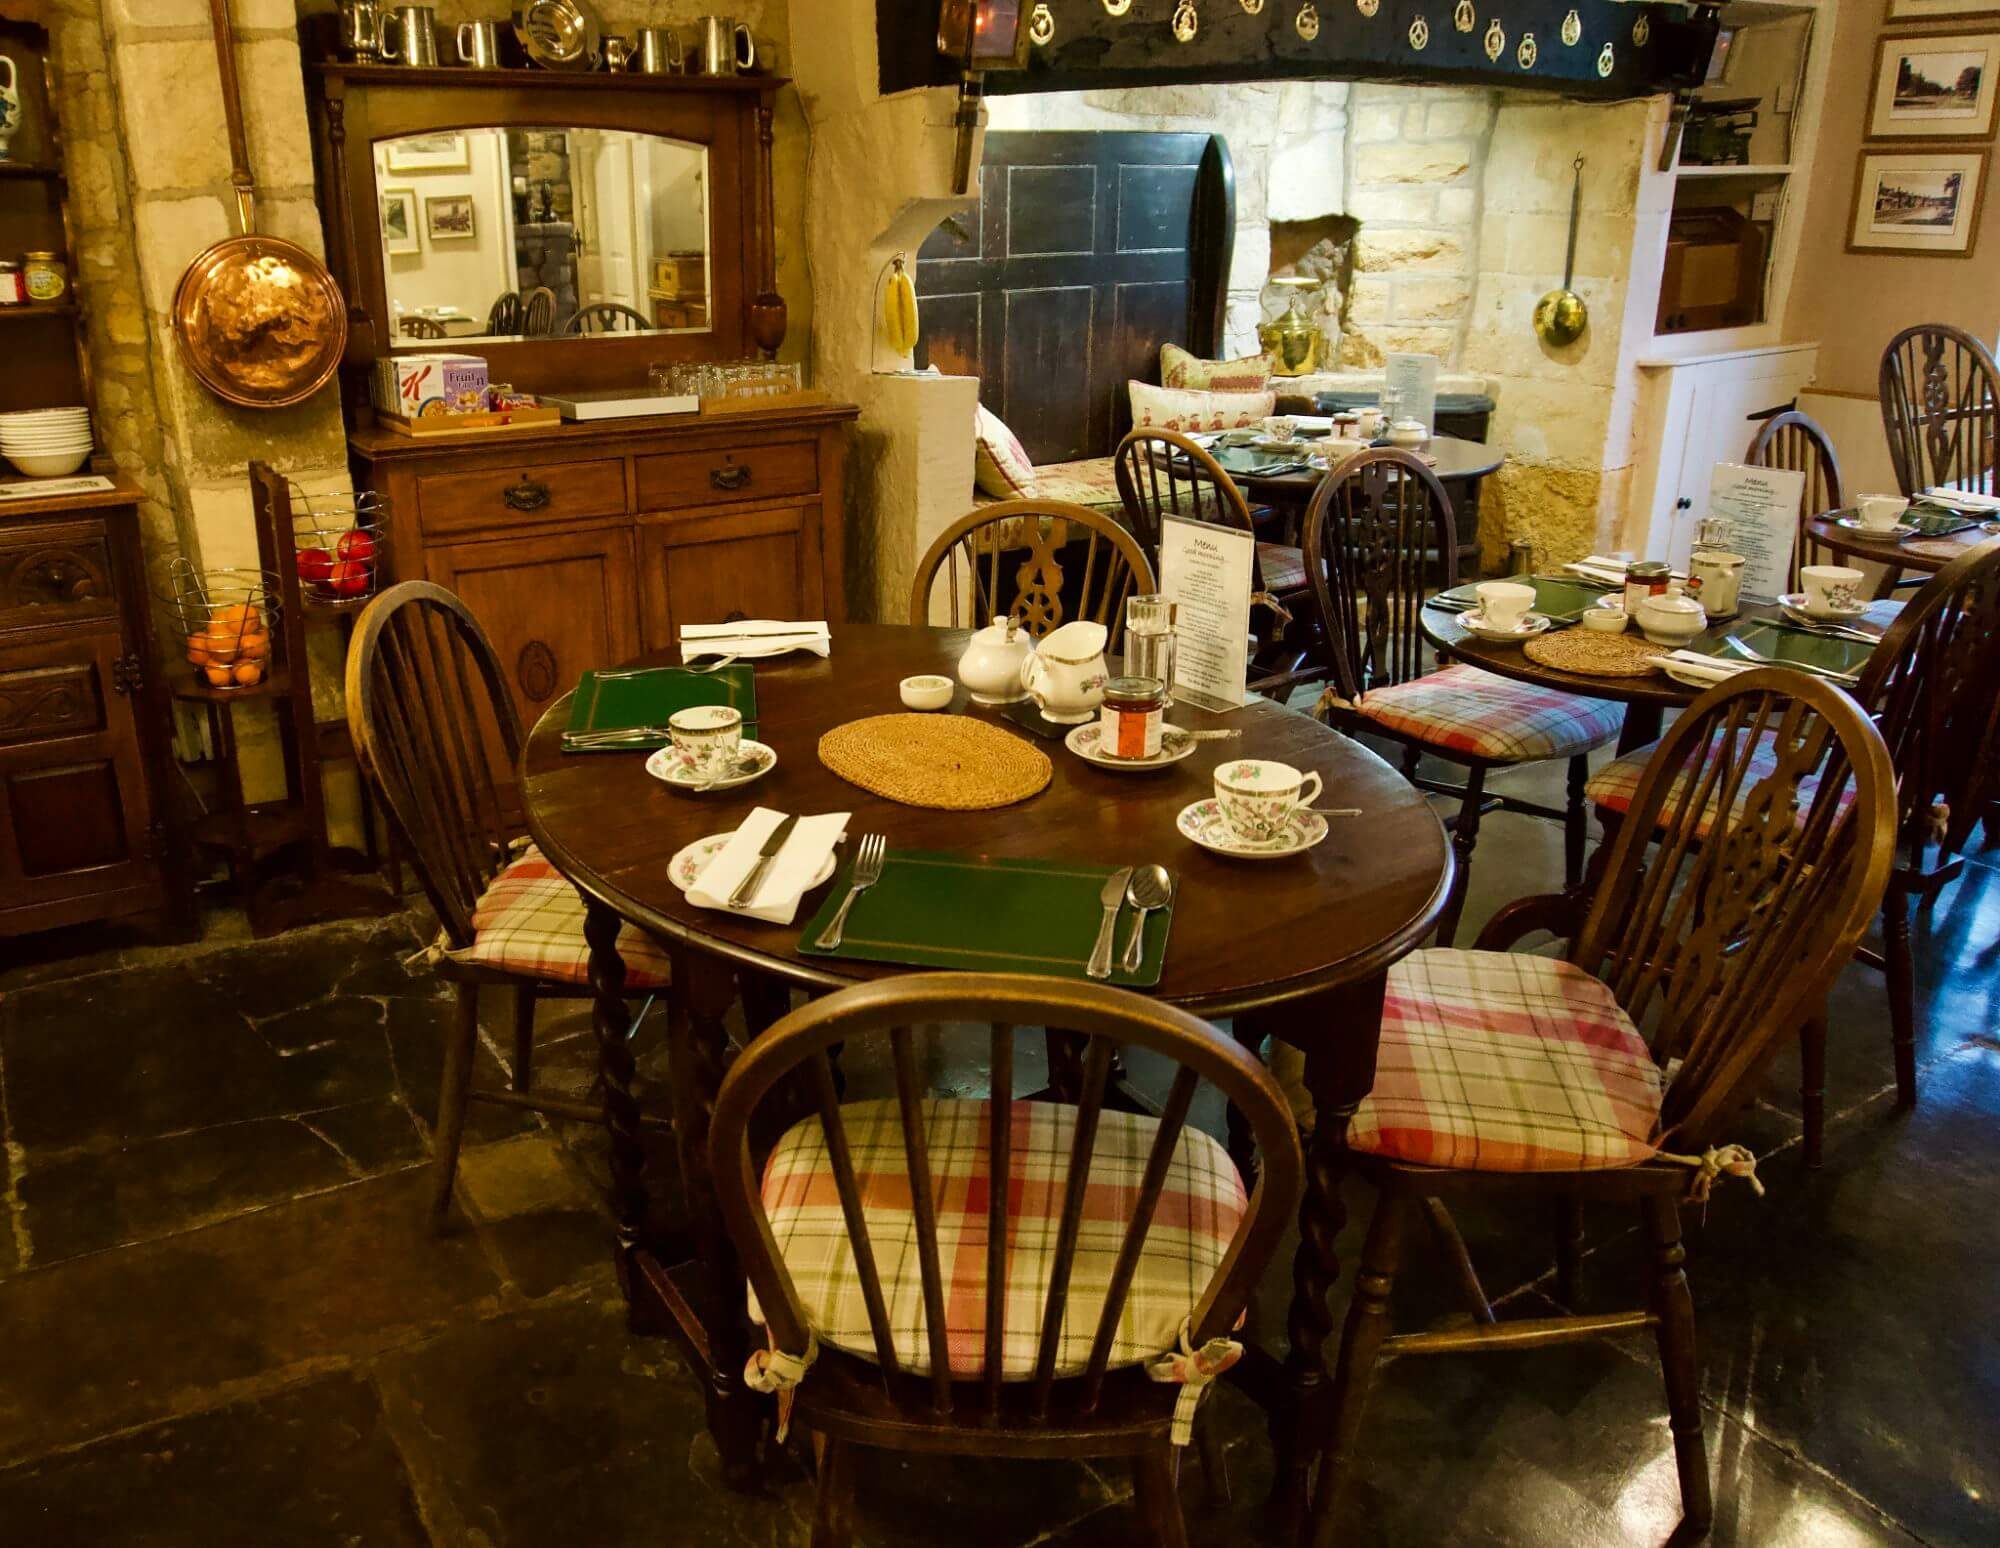 Inside the Olive Branch Bed and Breakfast